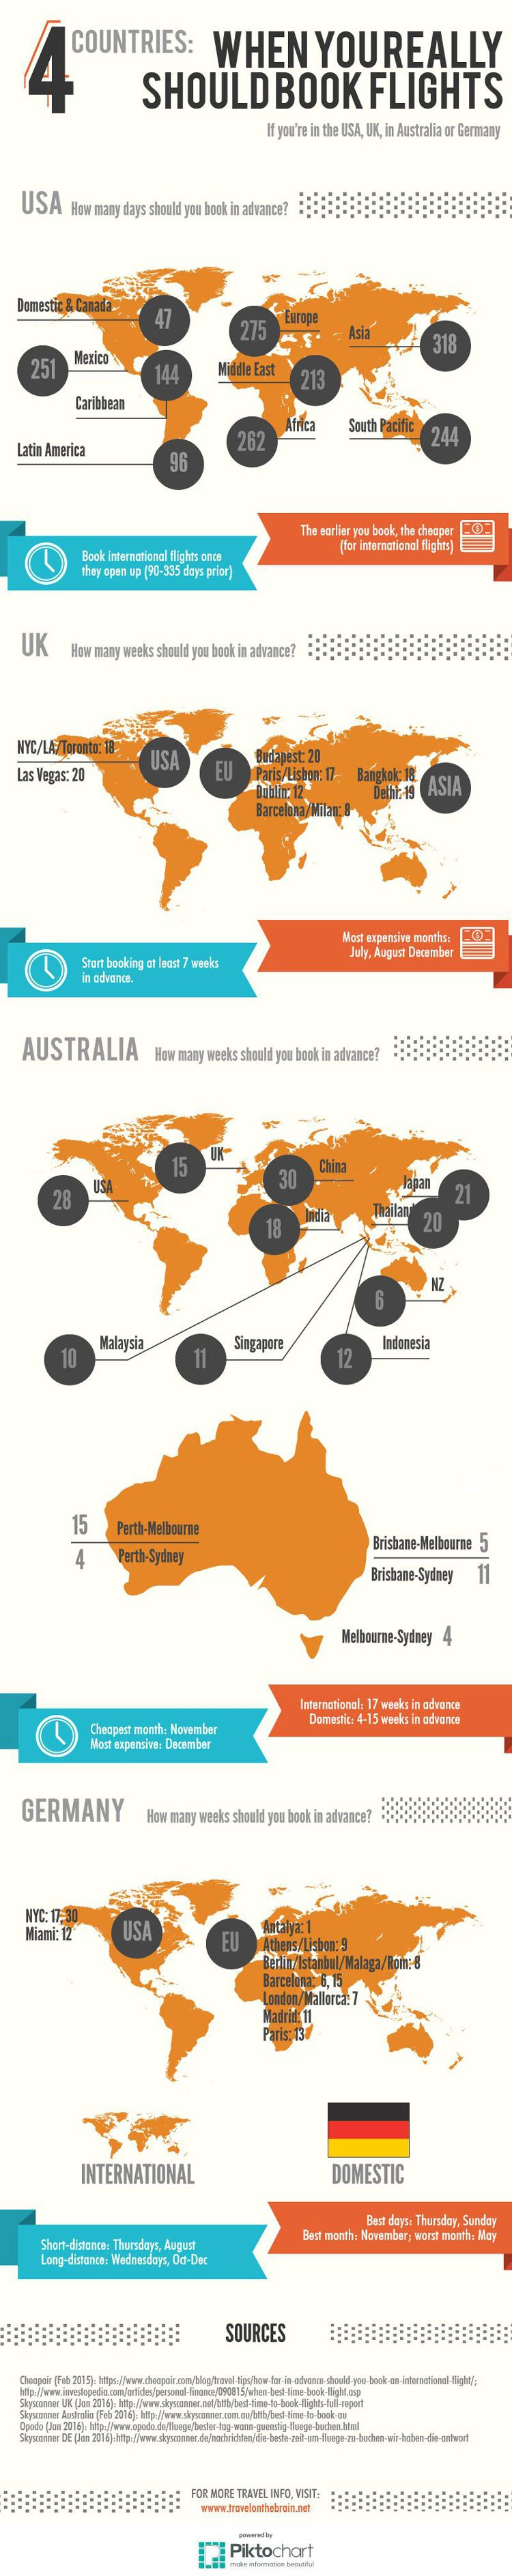 When to really book flights - best times for USA, Australia, UK and Germany (timing can save a lot of money)